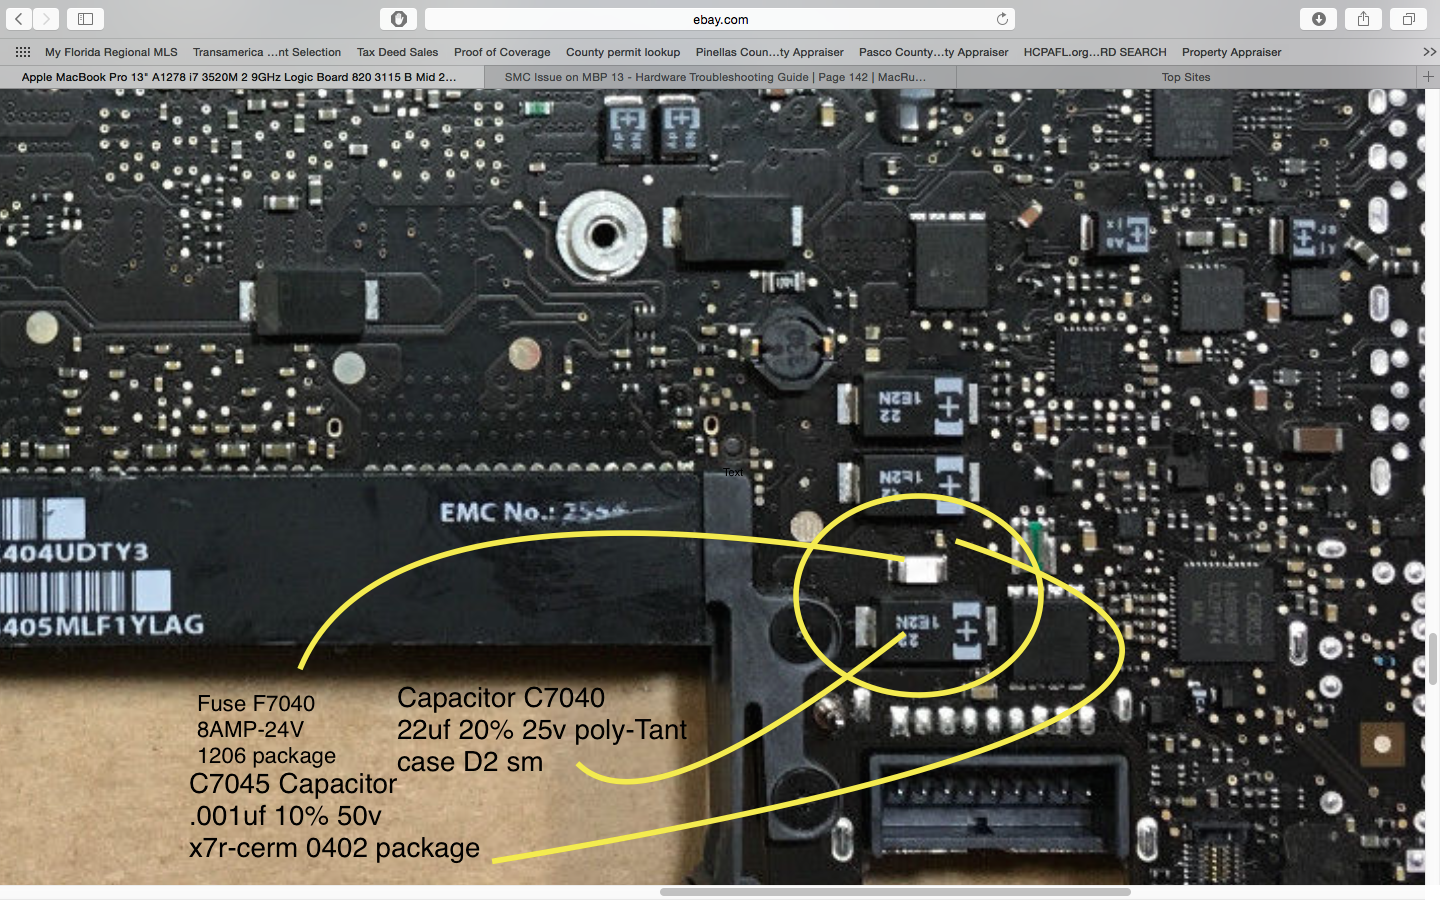 smc issue on mbp 13